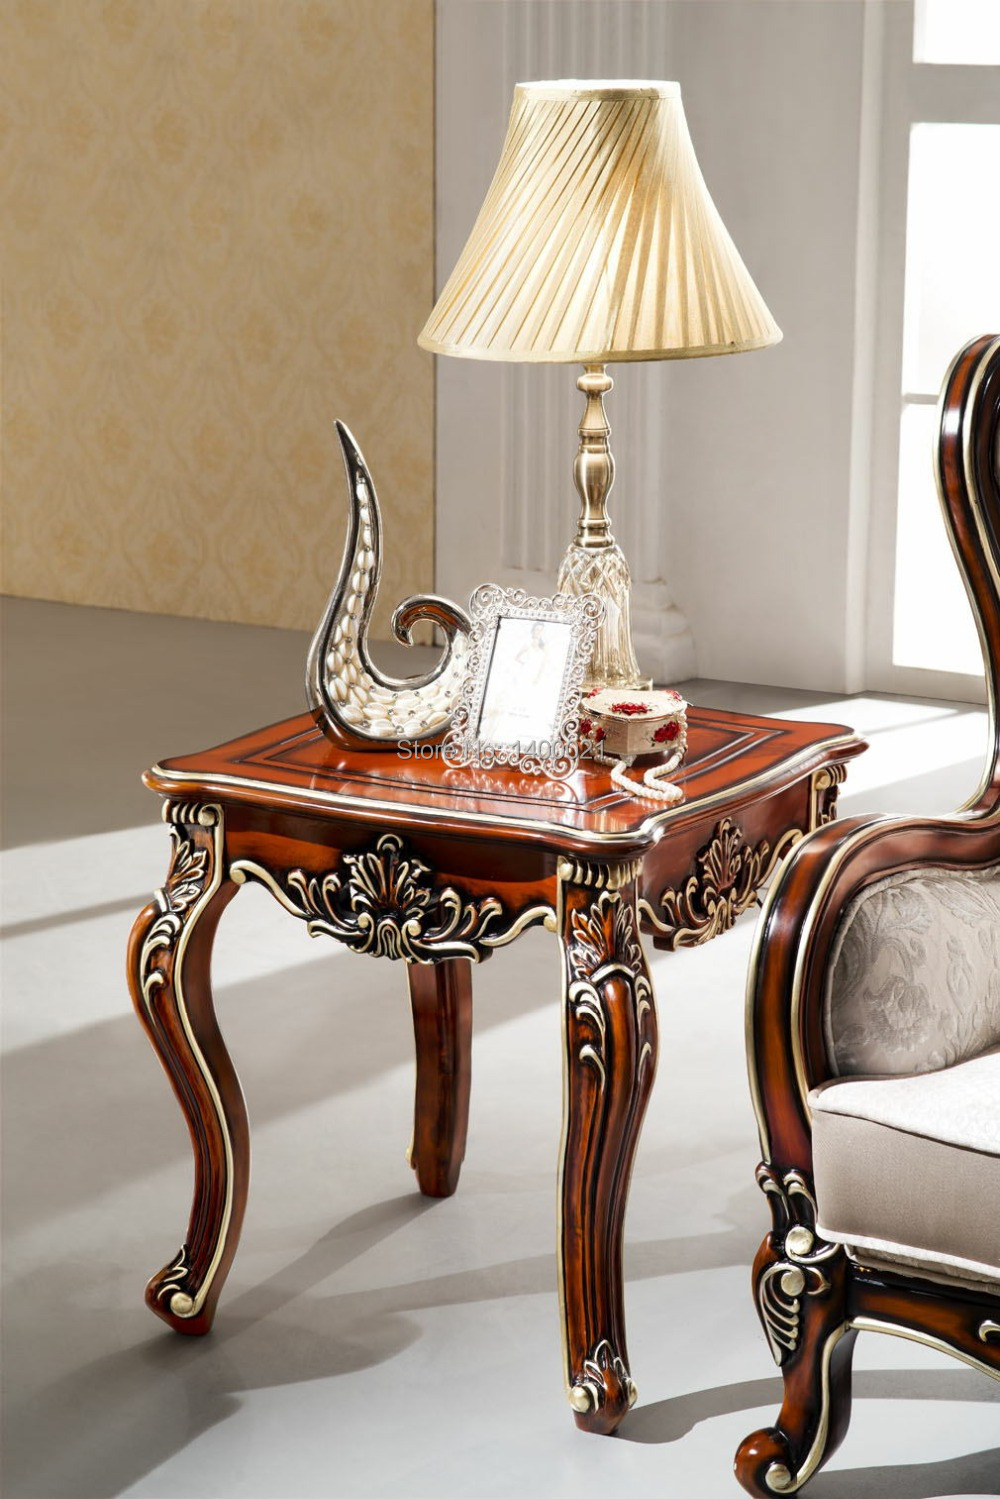 Aliexpress.com : Buy New Arrival Antique Side Table Design,small Coffee  Table Carving Craft Classical Design From Reliable Table Craft Products  Suppliers On ...